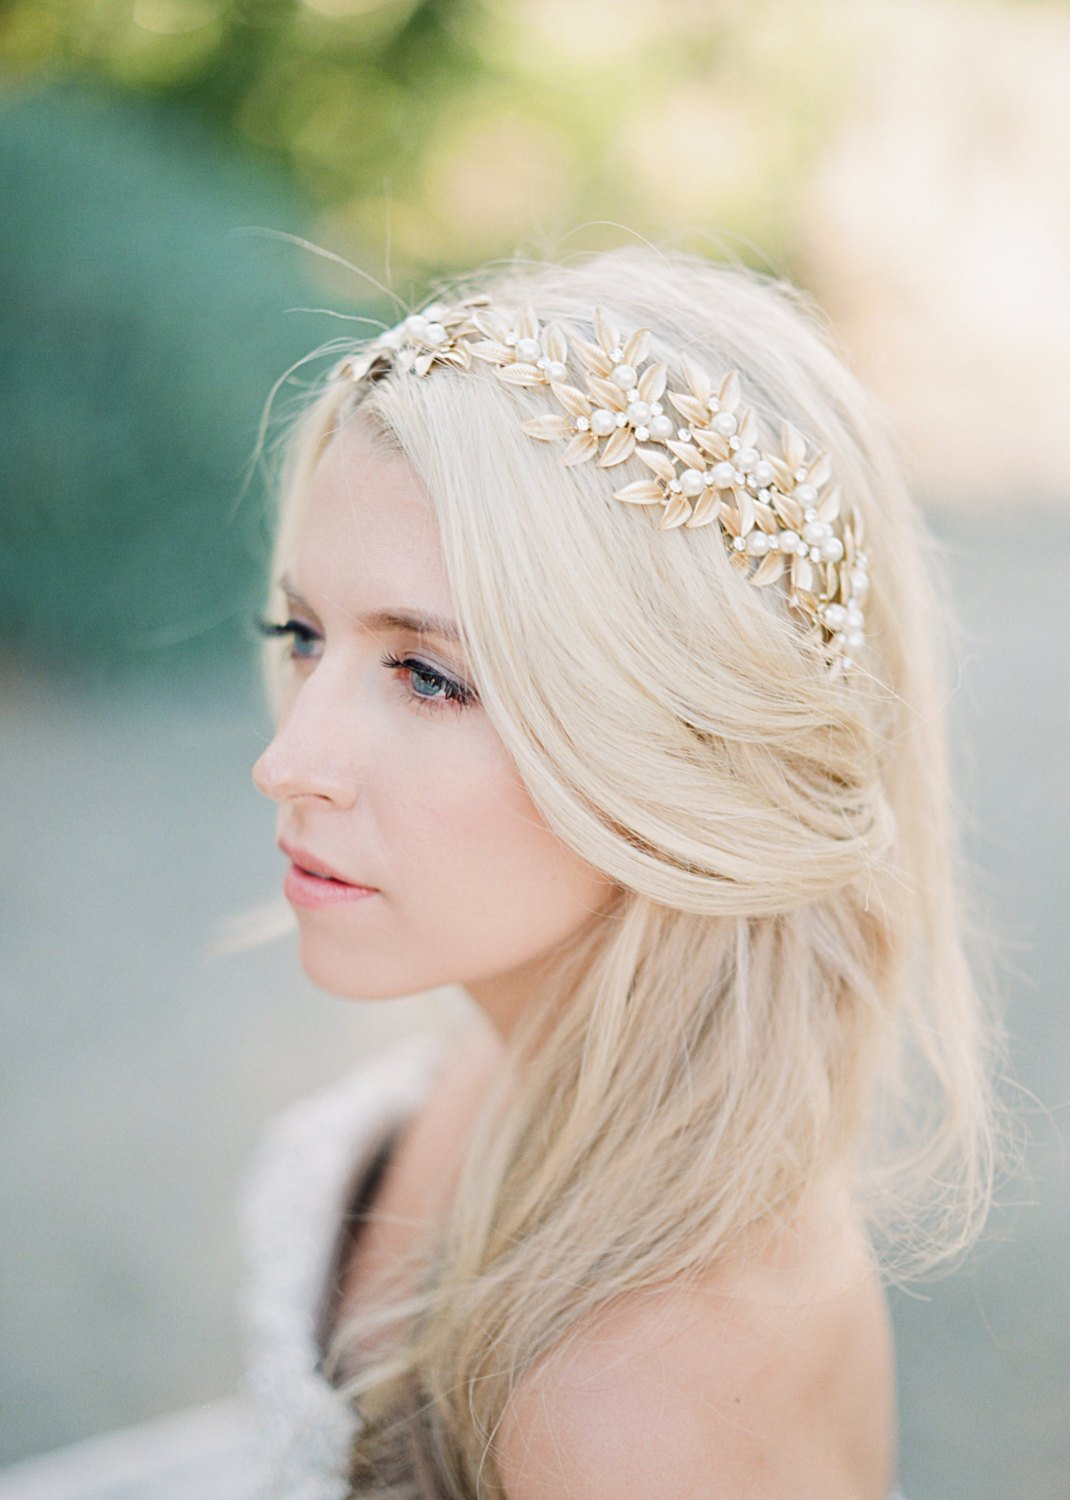 Bridal Headpiece, ELLWOOD Gold Bridal Leaf Headpiece, Pearl Bridal Headpiece, Gold Leaf Halo, Gold Bridal Pearl Headpiece, Bridal Halo Tiara.jpg